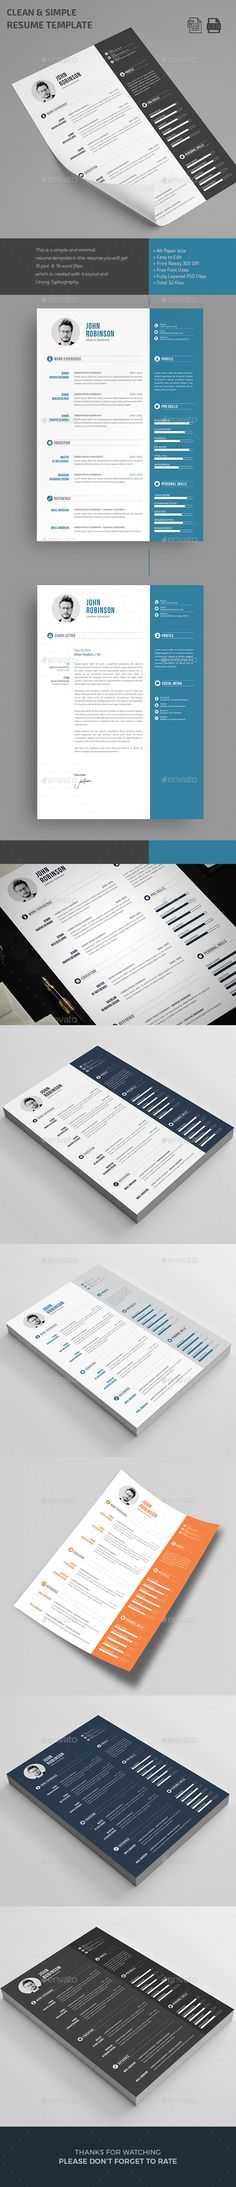 Resume — Photoshop PSD #clean resume #infographics • Available here → https://graphicriver.net/item/resume/16429921?ref=pxcr